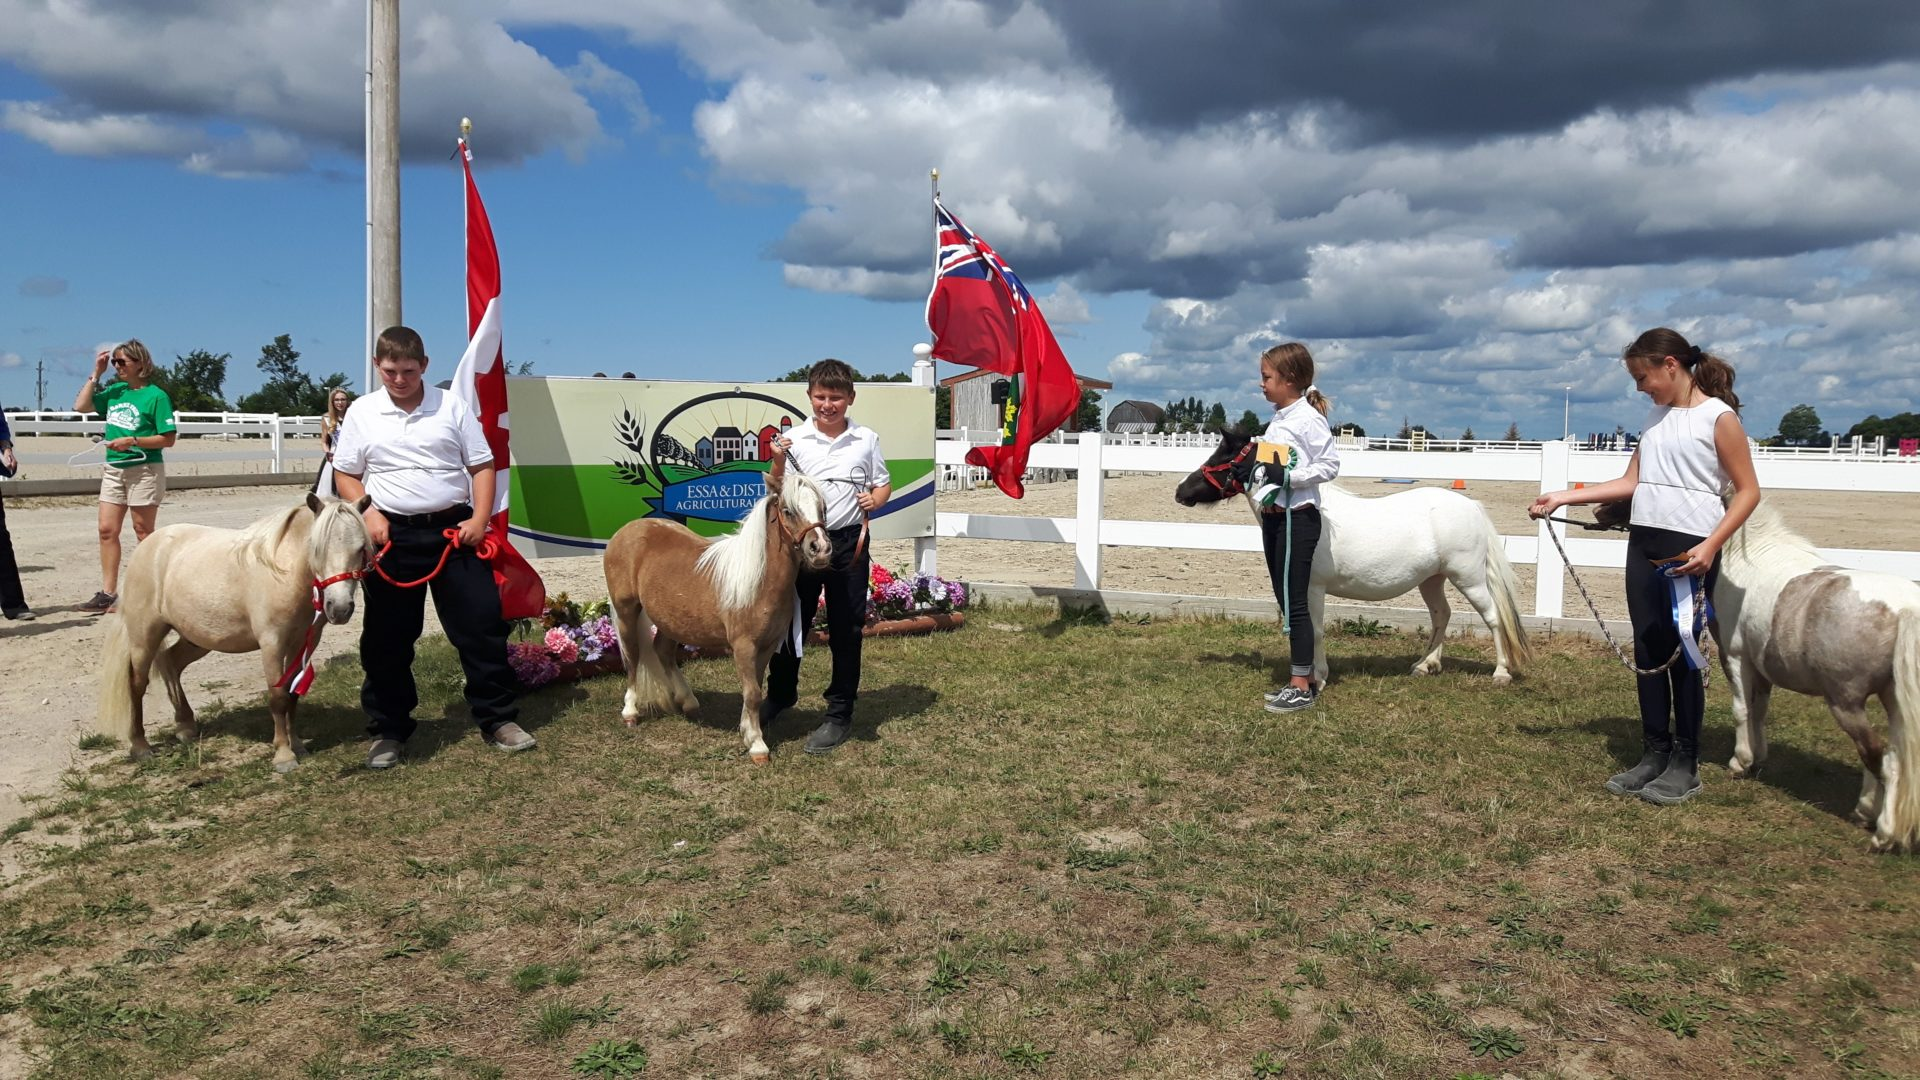 members and horses waiting to enter the show ring